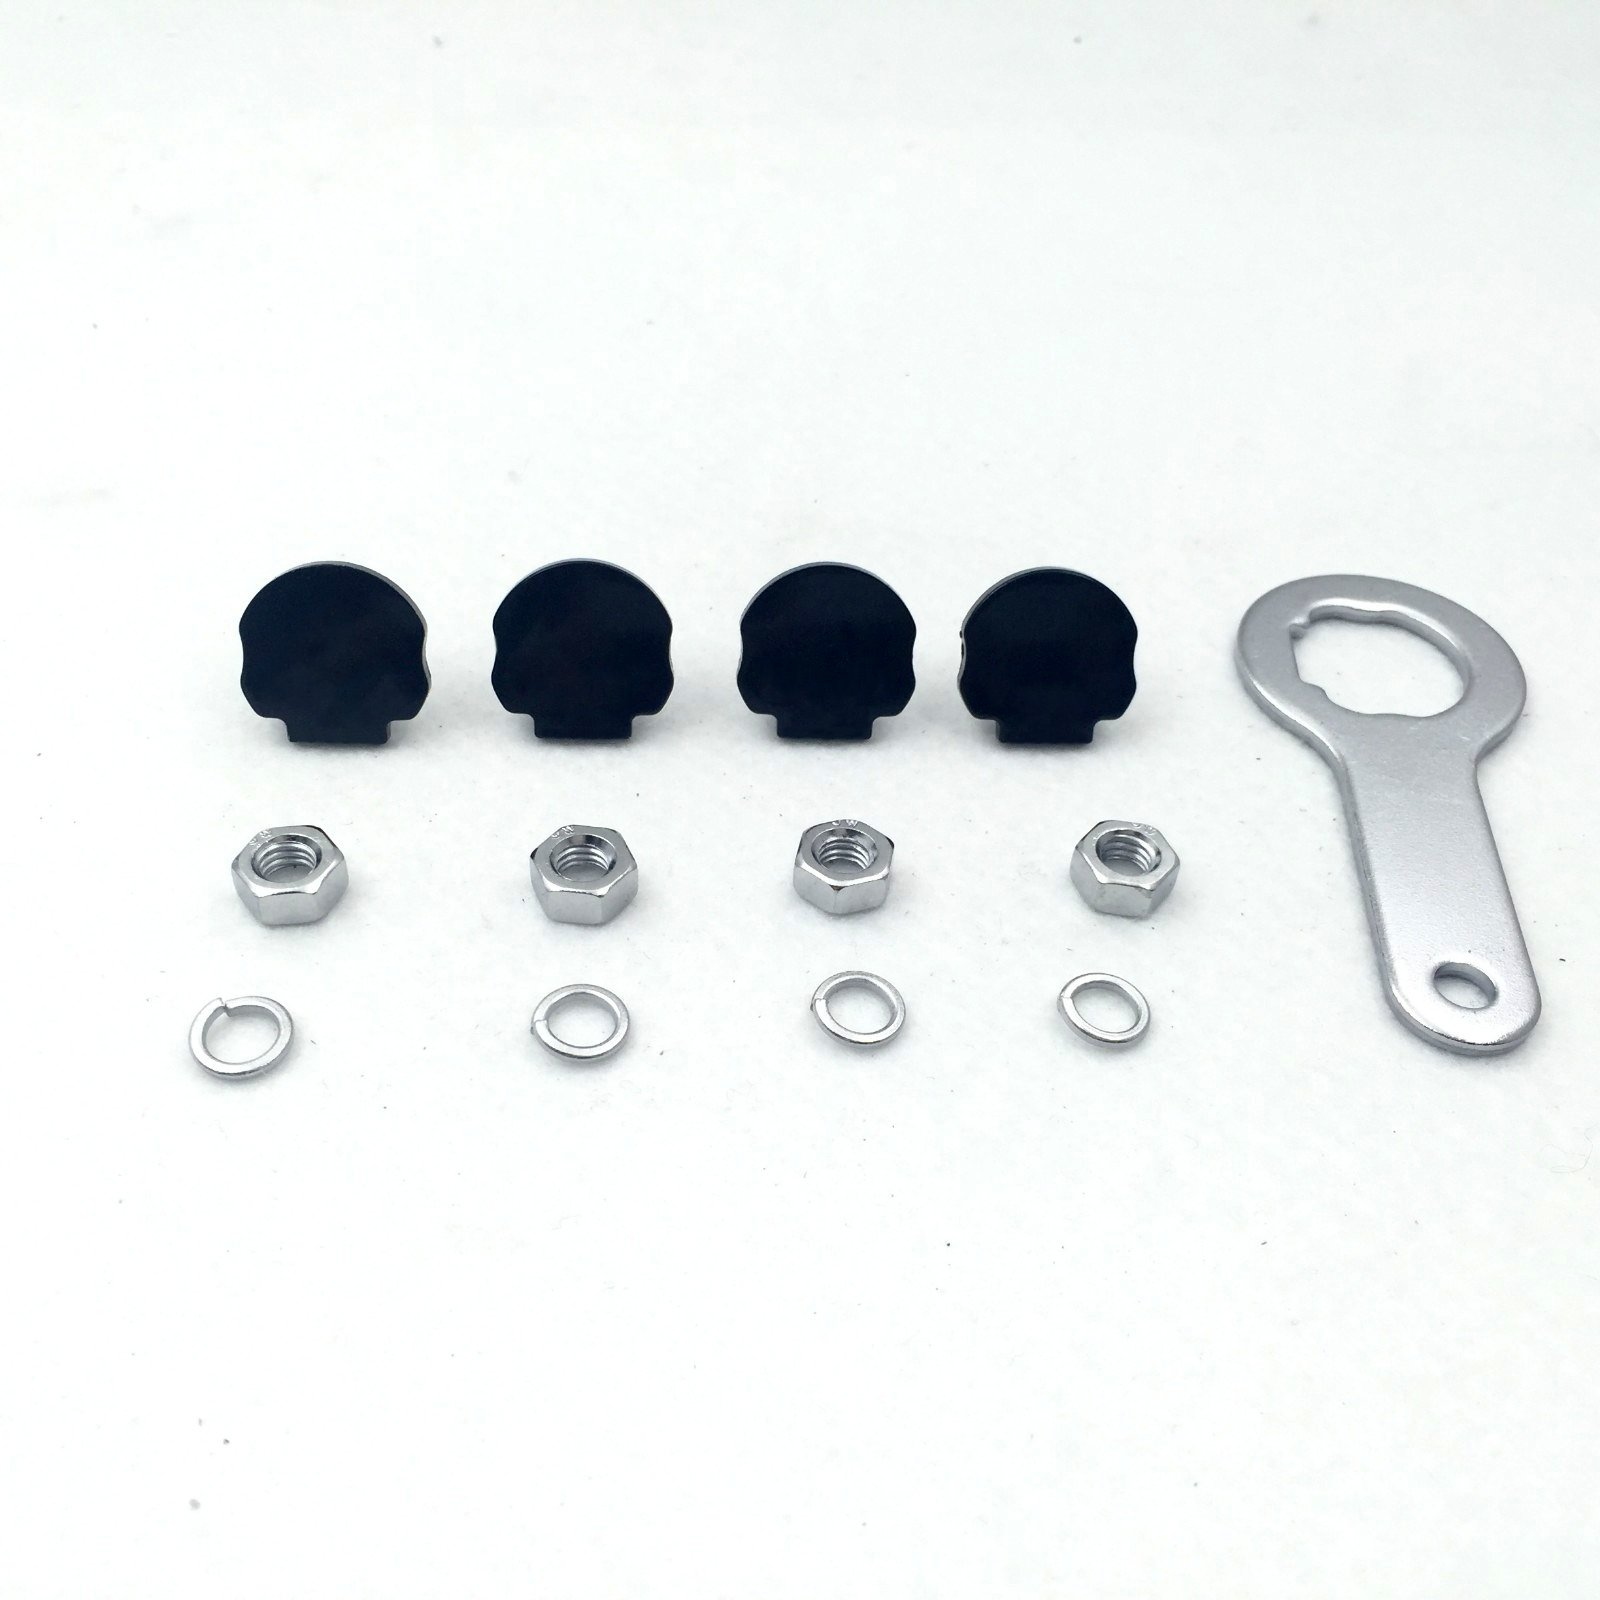 Motorcycle Black Skull Zombie License Plate Mounting Hardware(Wrench Lockwasher Nut and 1/4 inch Screw) For Harley Davidson Touring Road King Street Glide Road Glide Fat Boy Softail